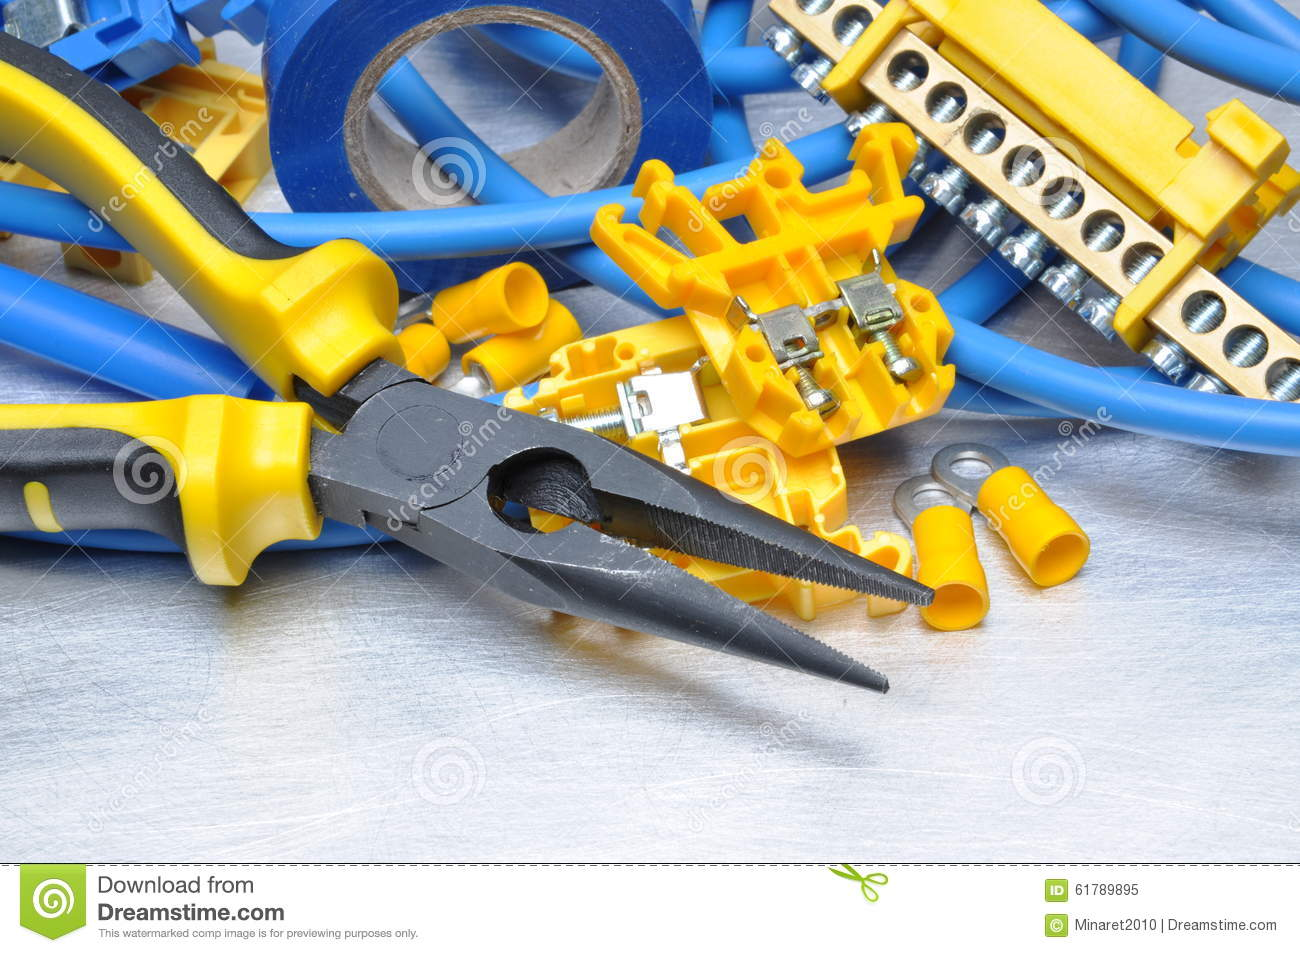 Pliers with electrical component kit on grey metal background